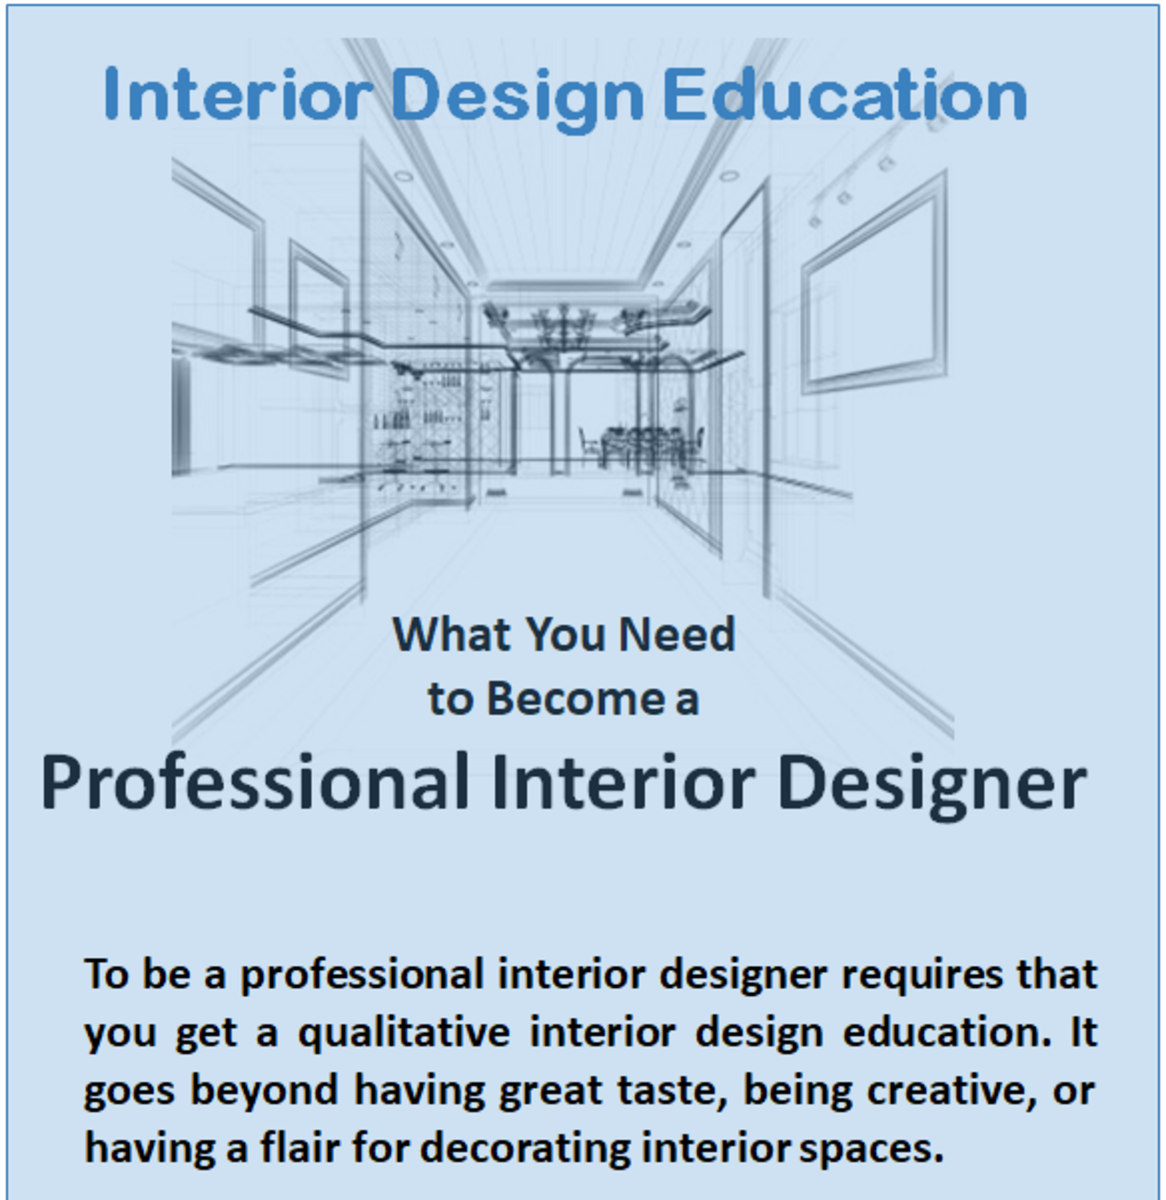 Interior Design Education: What You Need to Become a Professional Designer